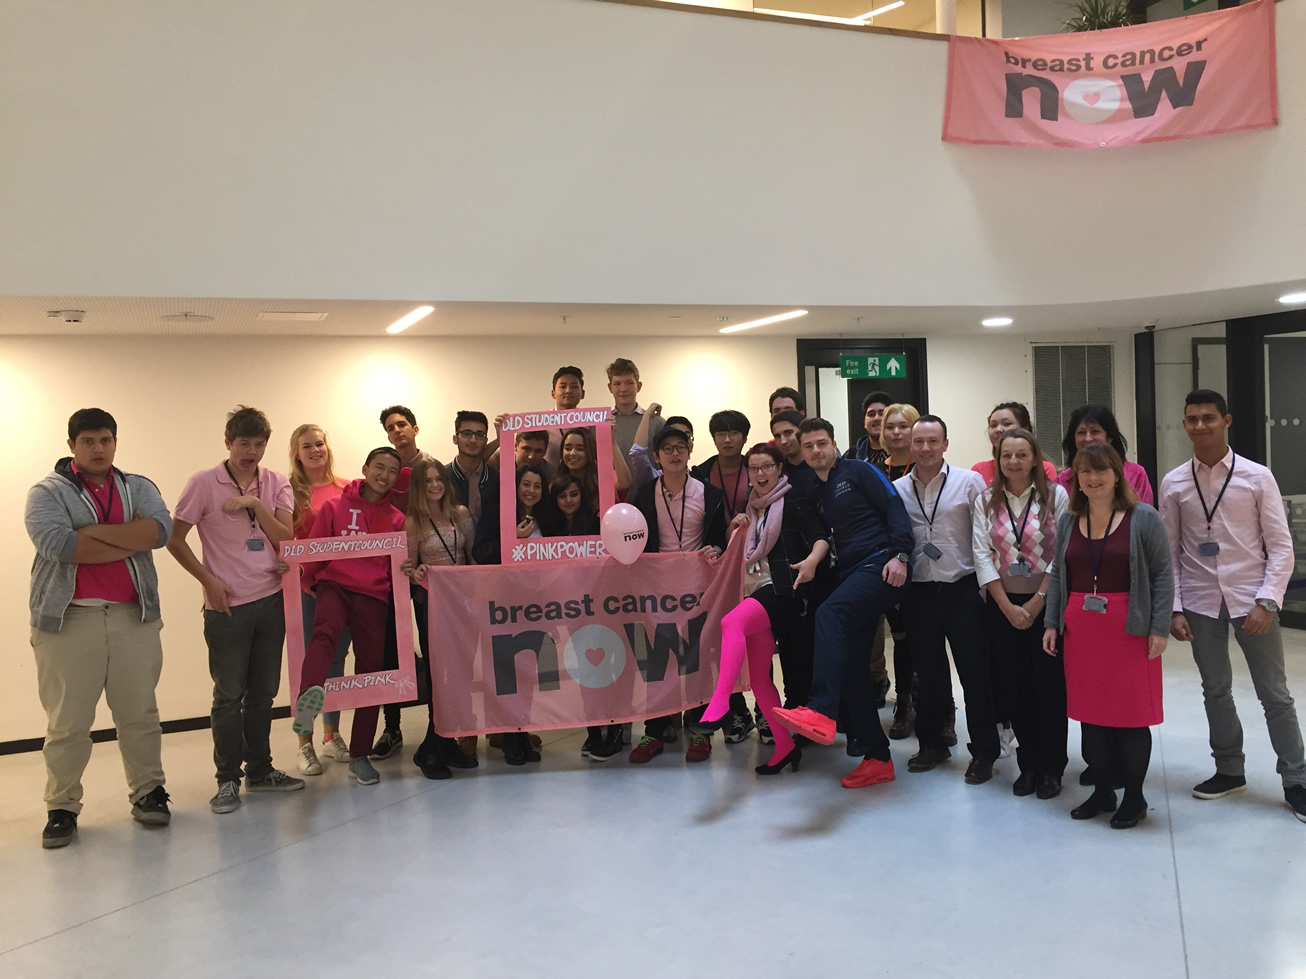 DLD College London Breast Cancer Awareness Day